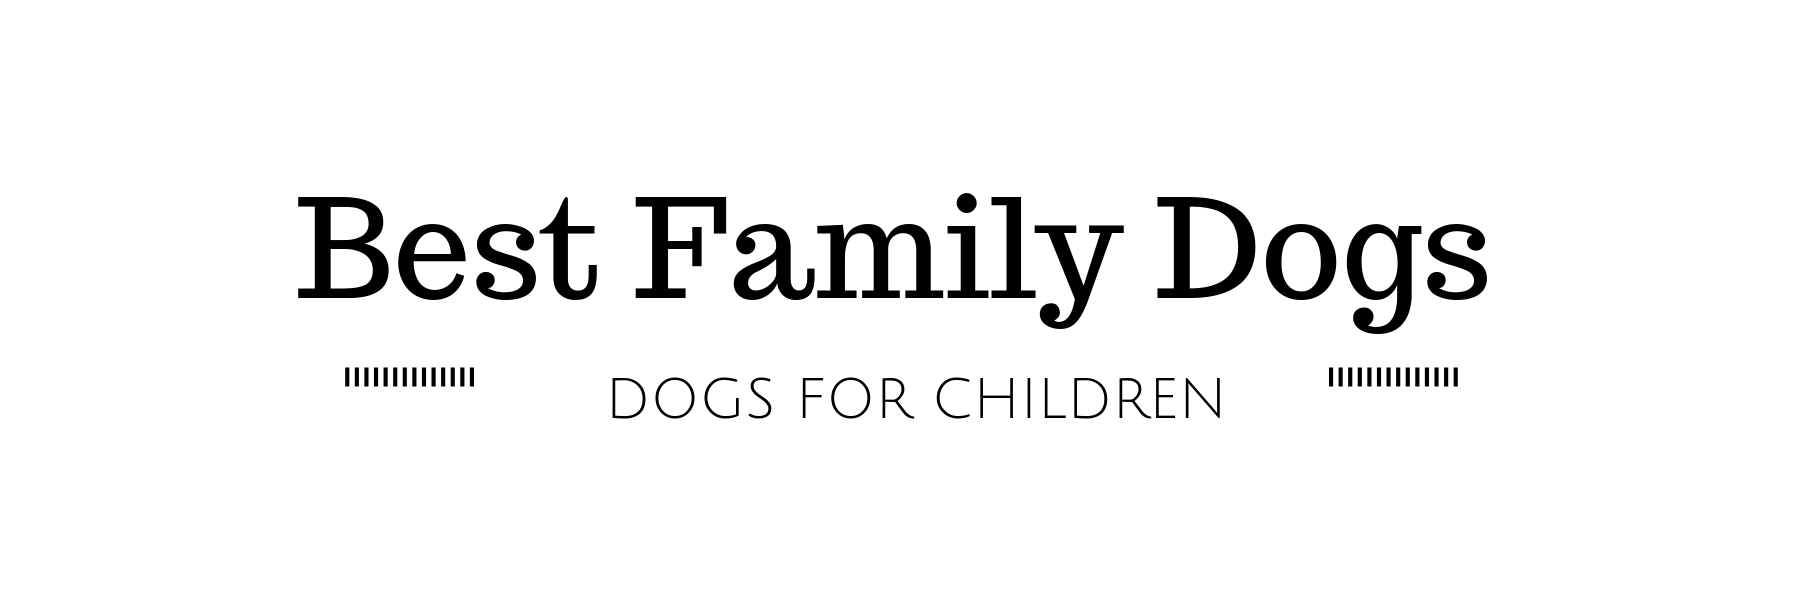 21 Best Dog Breeds for Kids and Families